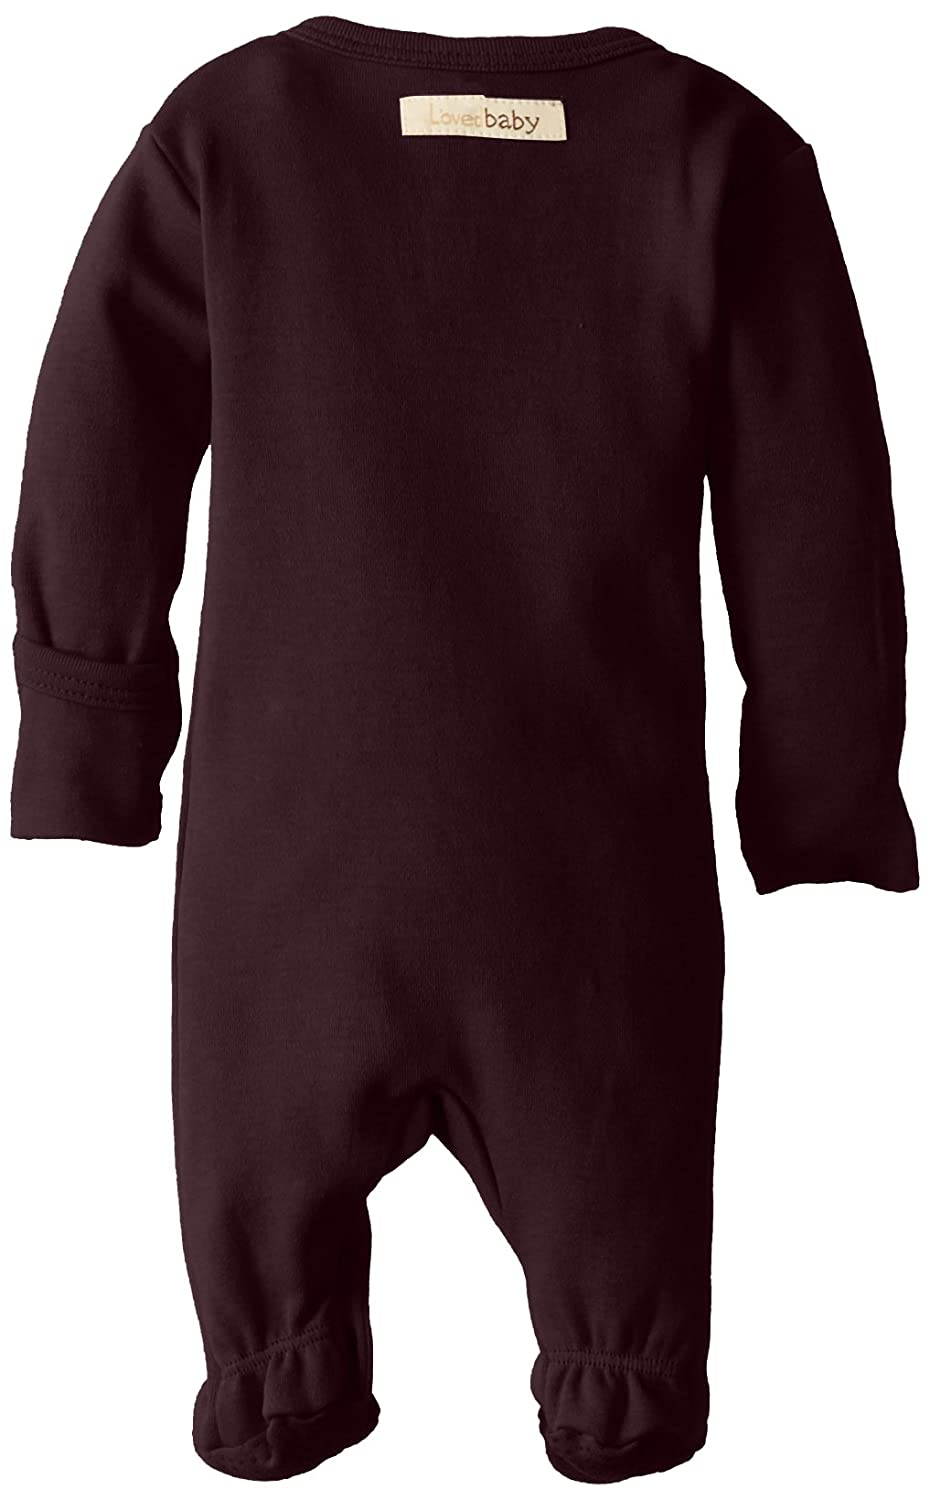 e42985f95e Amazon.com  L ovedbaby Unisex-Baby Organic Cotton Footed Overall  Clothing